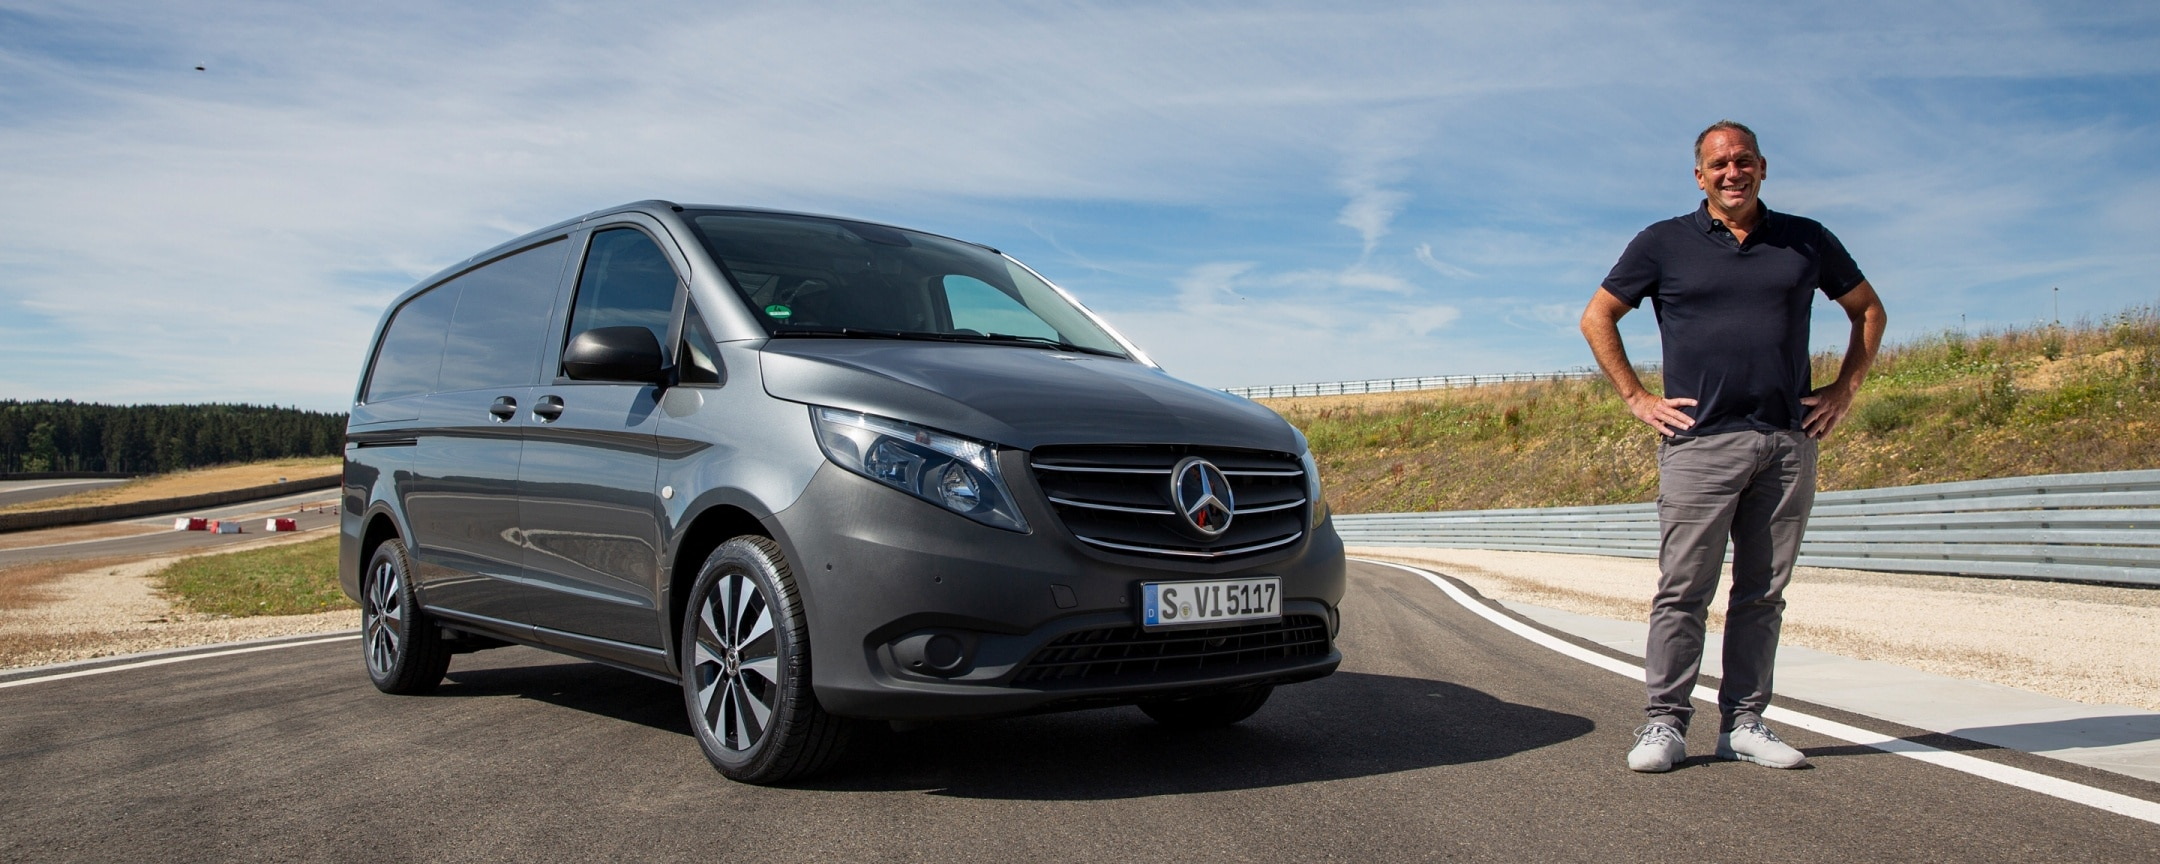 A man is standing next to the new Mercedes-Benz Vito.